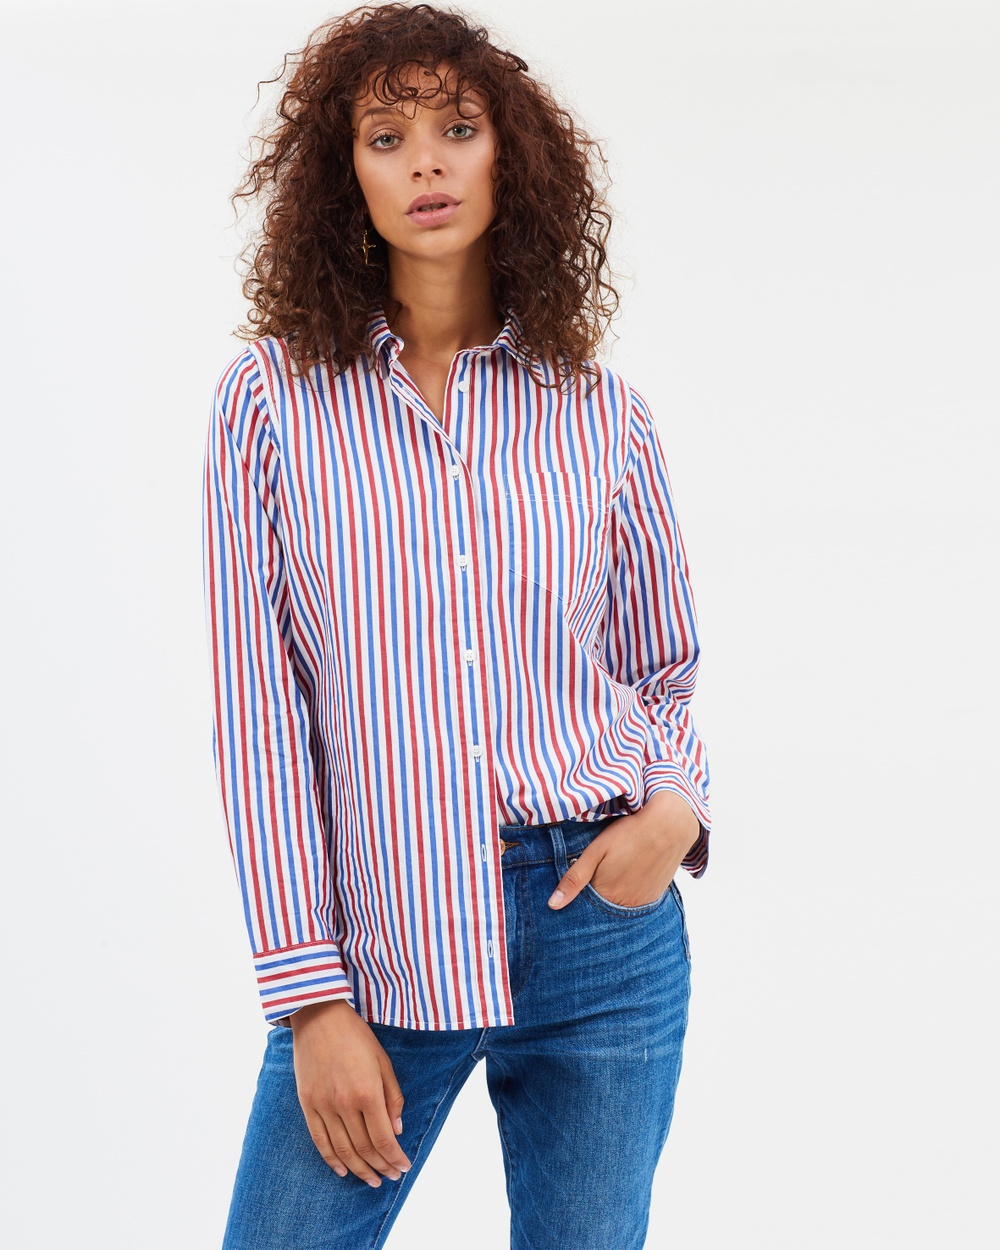 J.Crew Boy Shirt in Trifecta Stripe Tops Red & Blue Boy Shirt in Trifecta Stripe